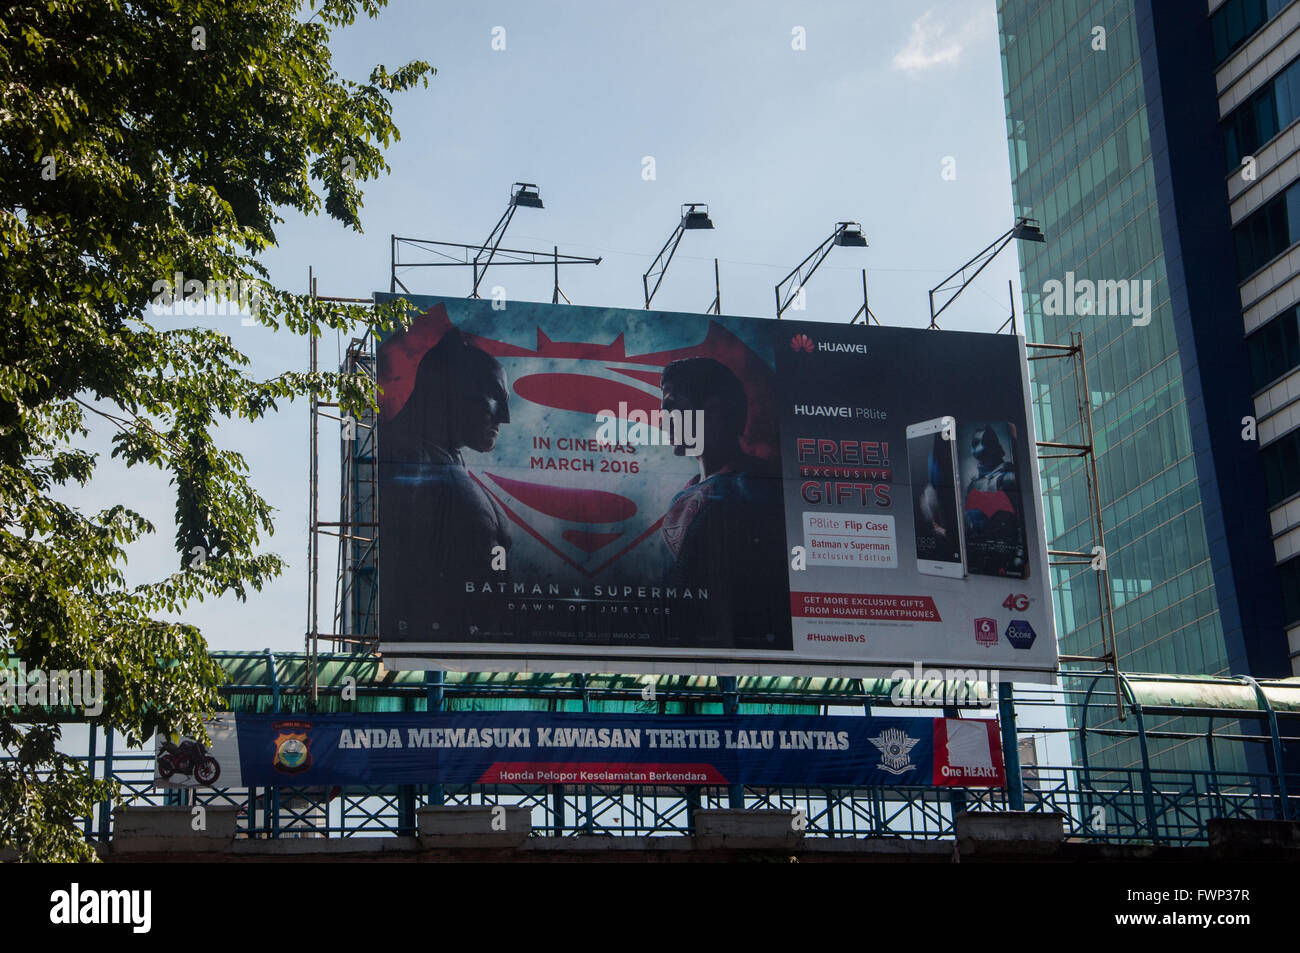 Promotion billboard of Batman vs Superman movie attached on the street-crossing bridge at Sudirman Street. Bank - Stock Image